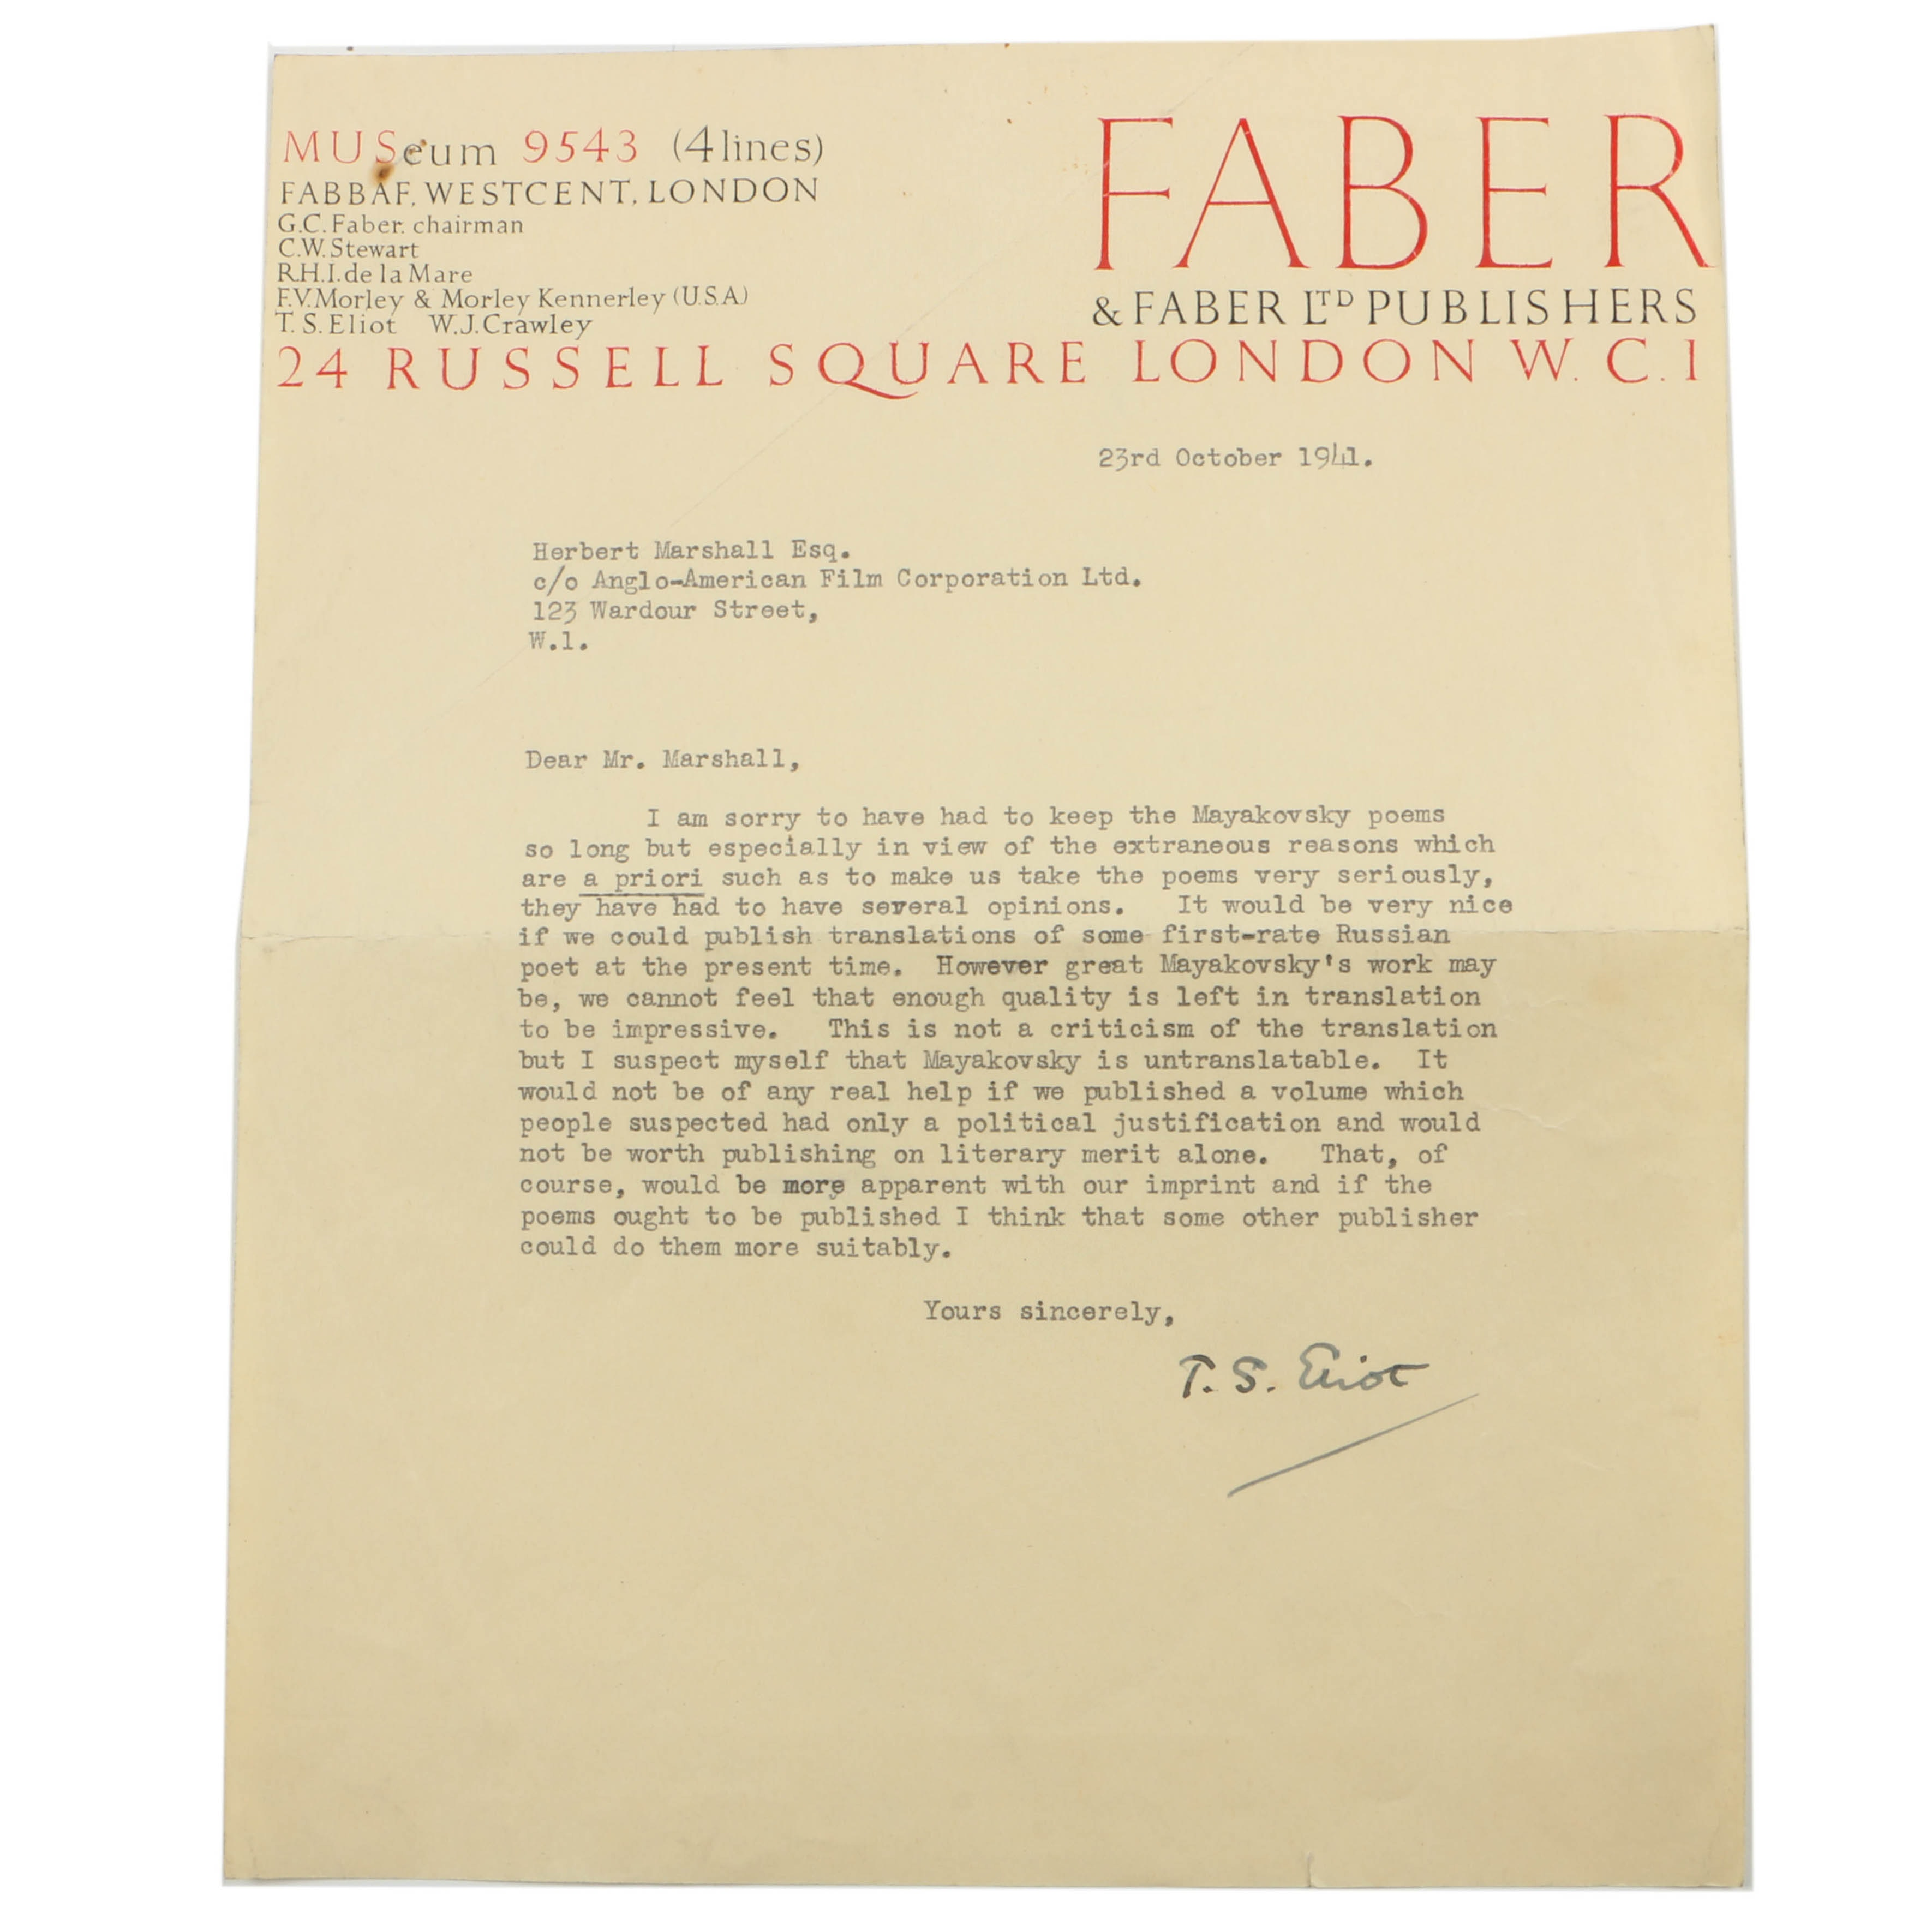 1941 Letter Signed by T.S. Eliot to Herbert Marshall